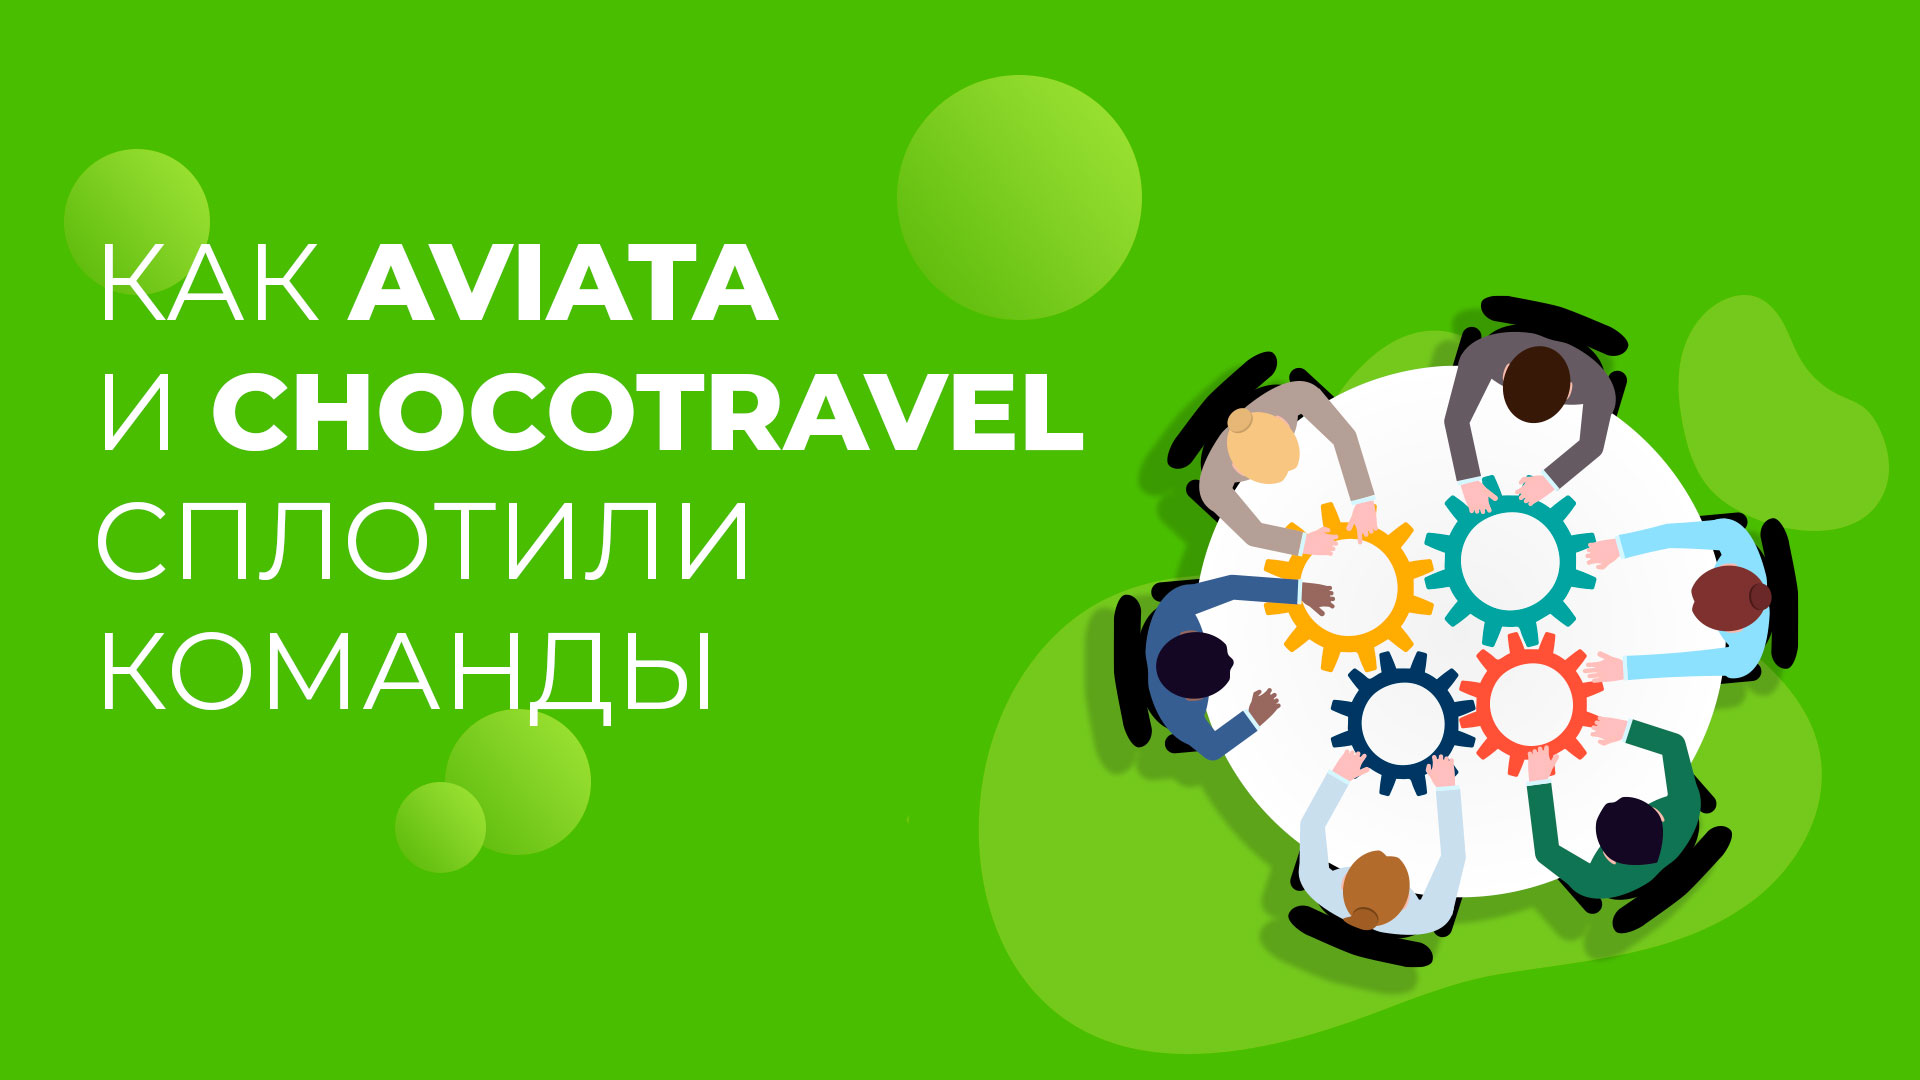 aviata-chocotravel